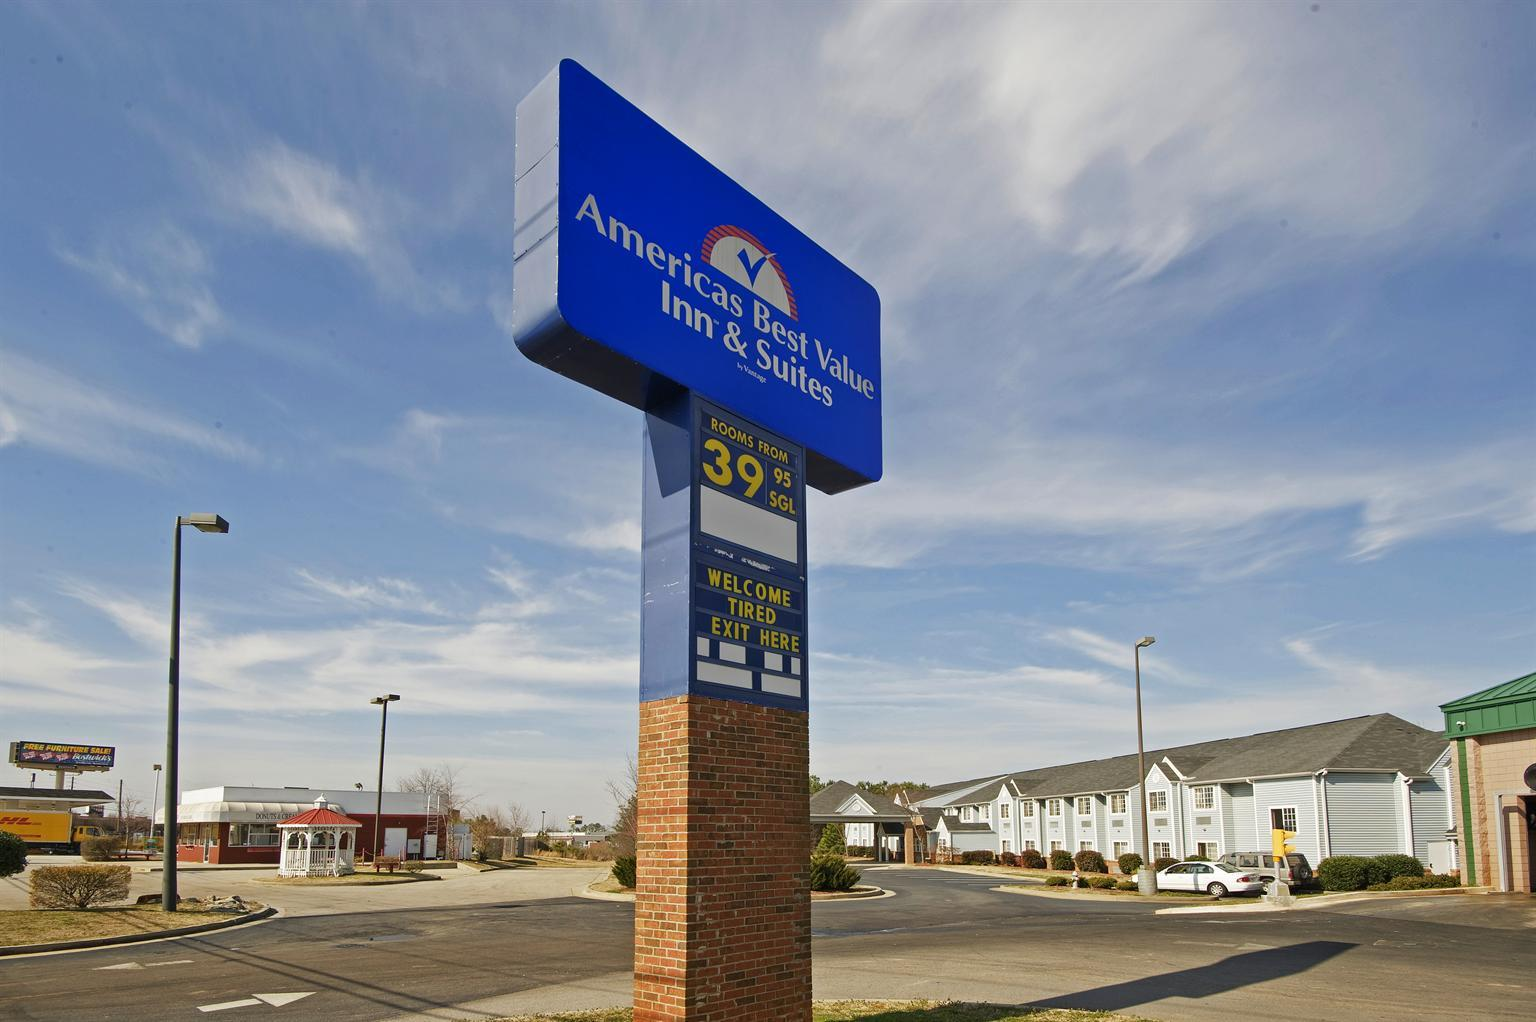 Americas best value inn suites mcdonough coupons near me for Americas best coupon code